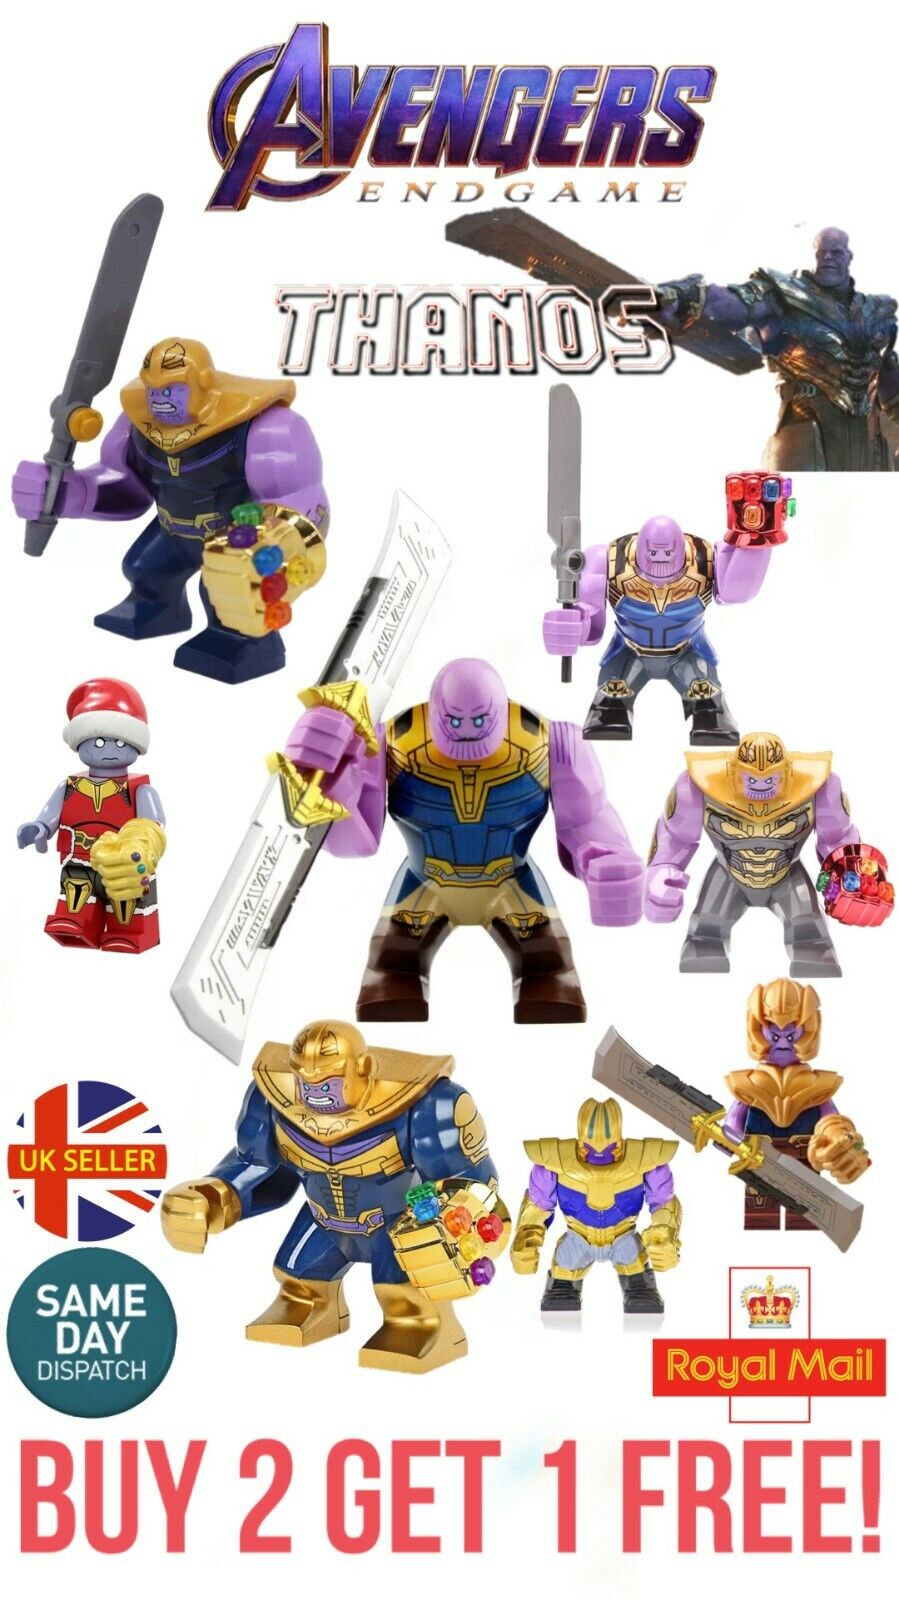 Thanos Mini Figure Iron Man Infinity Gauntlet Hulk Avengers Marvel UK Seller